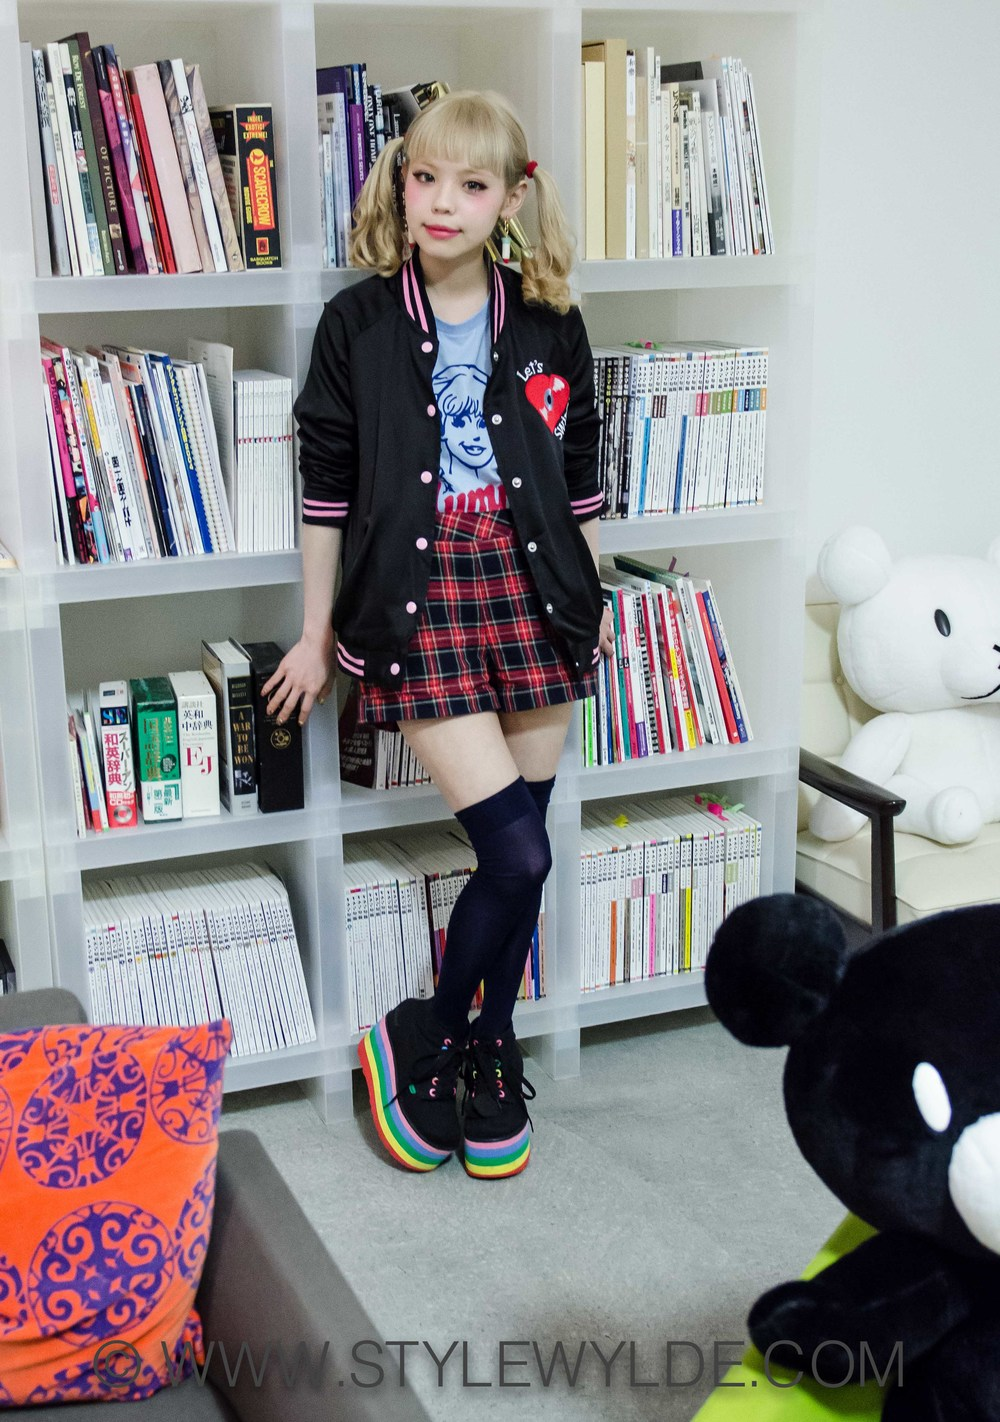 stylewylde_AyumiInterview_April14 (1 of 1)-4.jpg